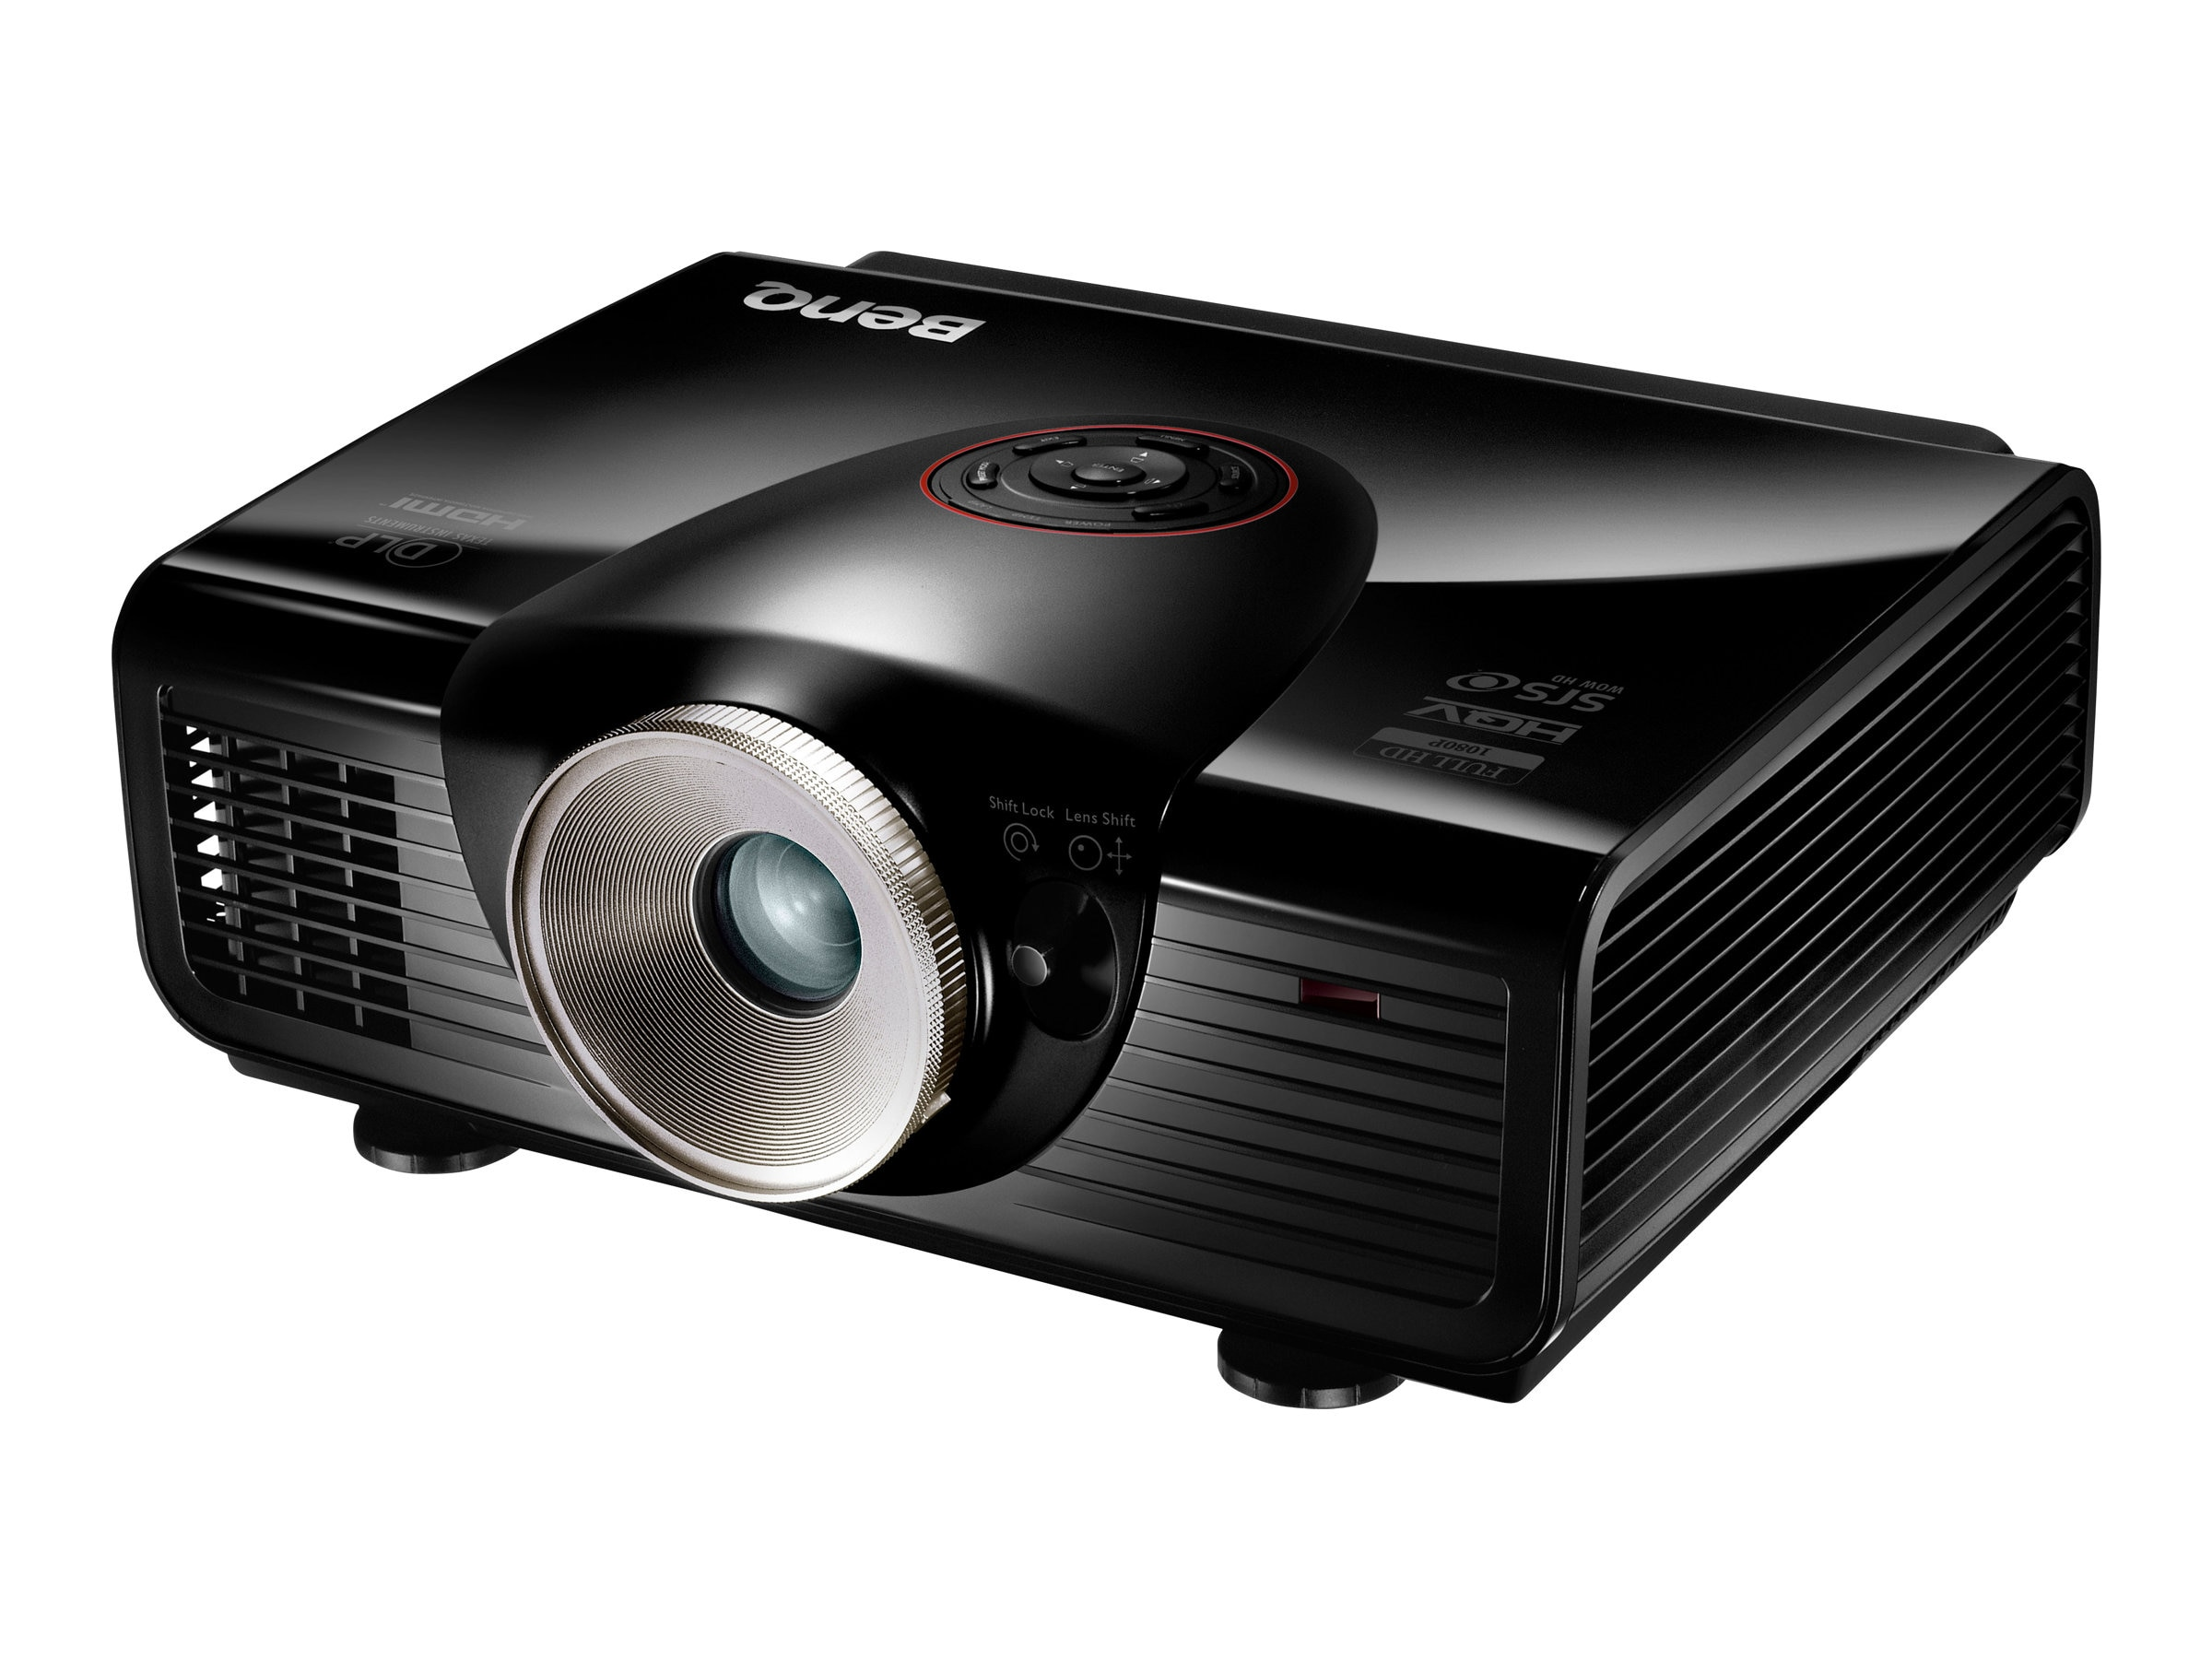 Benq SH940 Full HD DLP Projector, 4000 lumens, Black, SH940, 15114422, Projectors